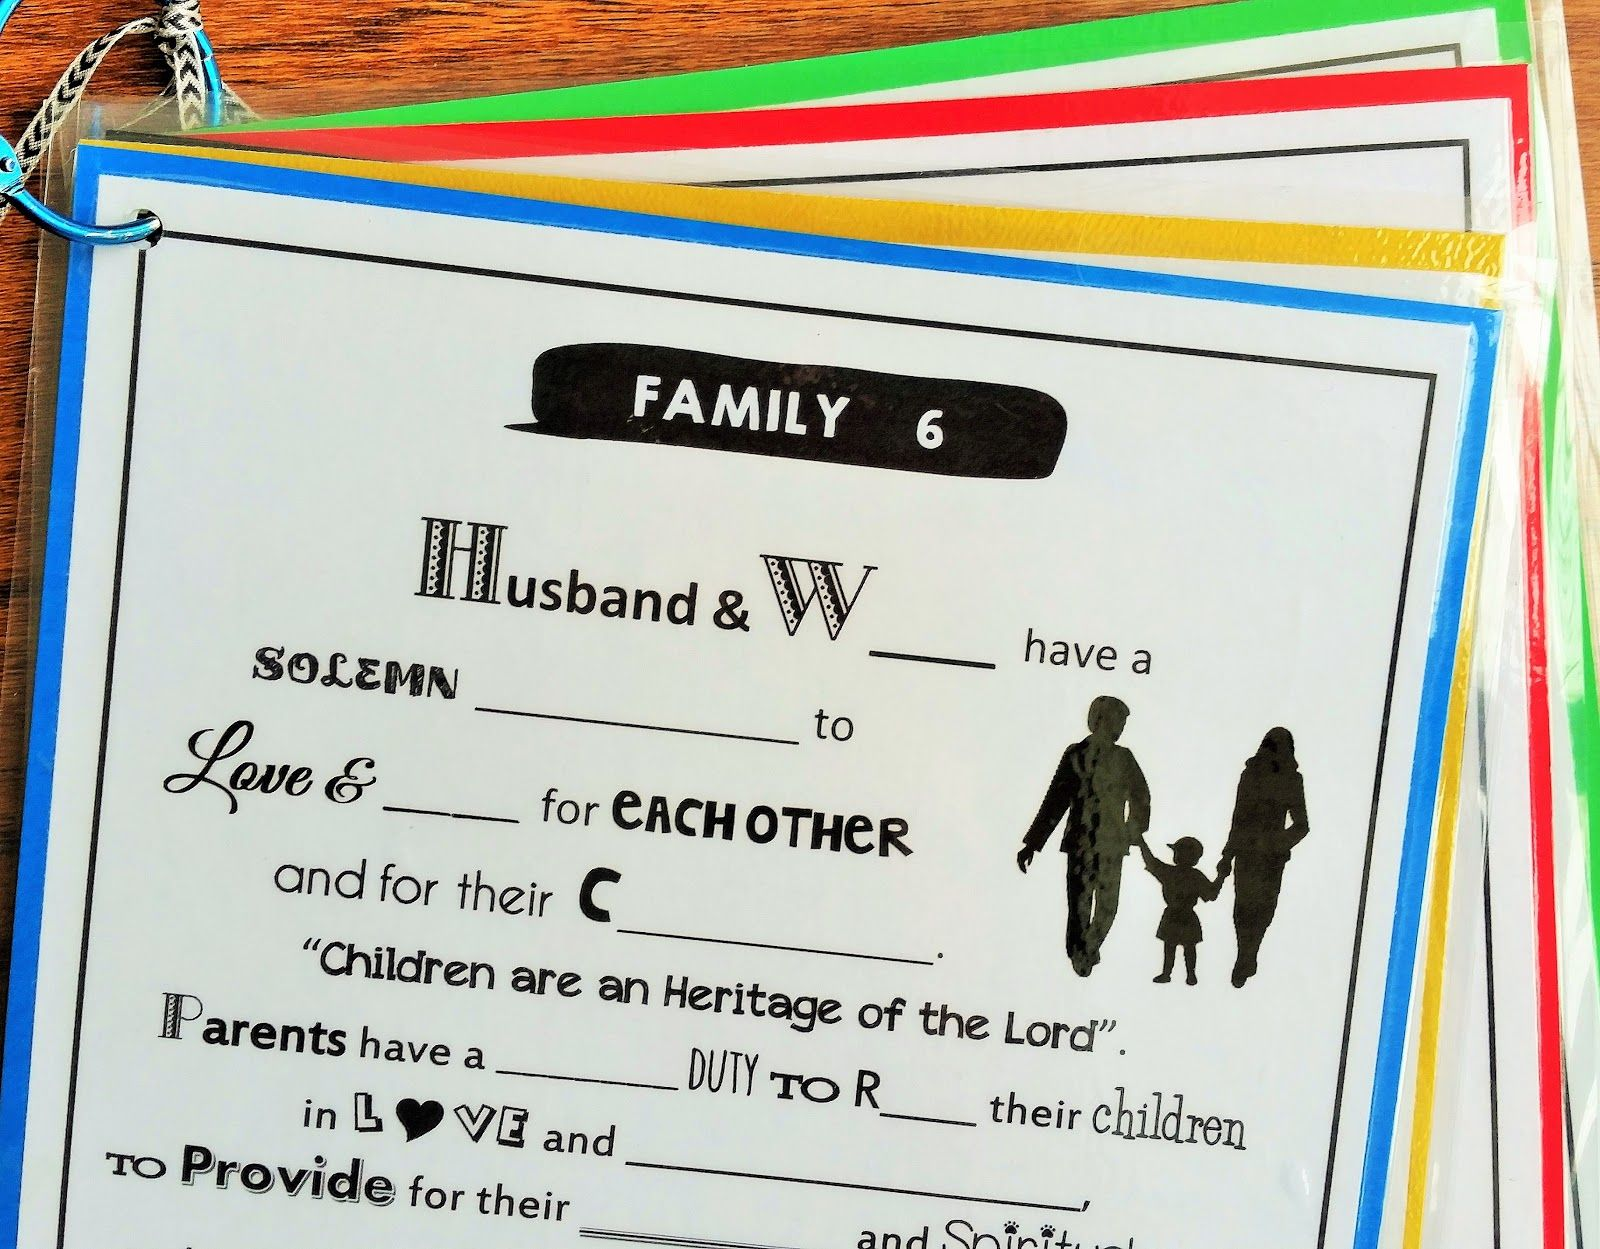 Missing Words A Proclamation To The Family Free